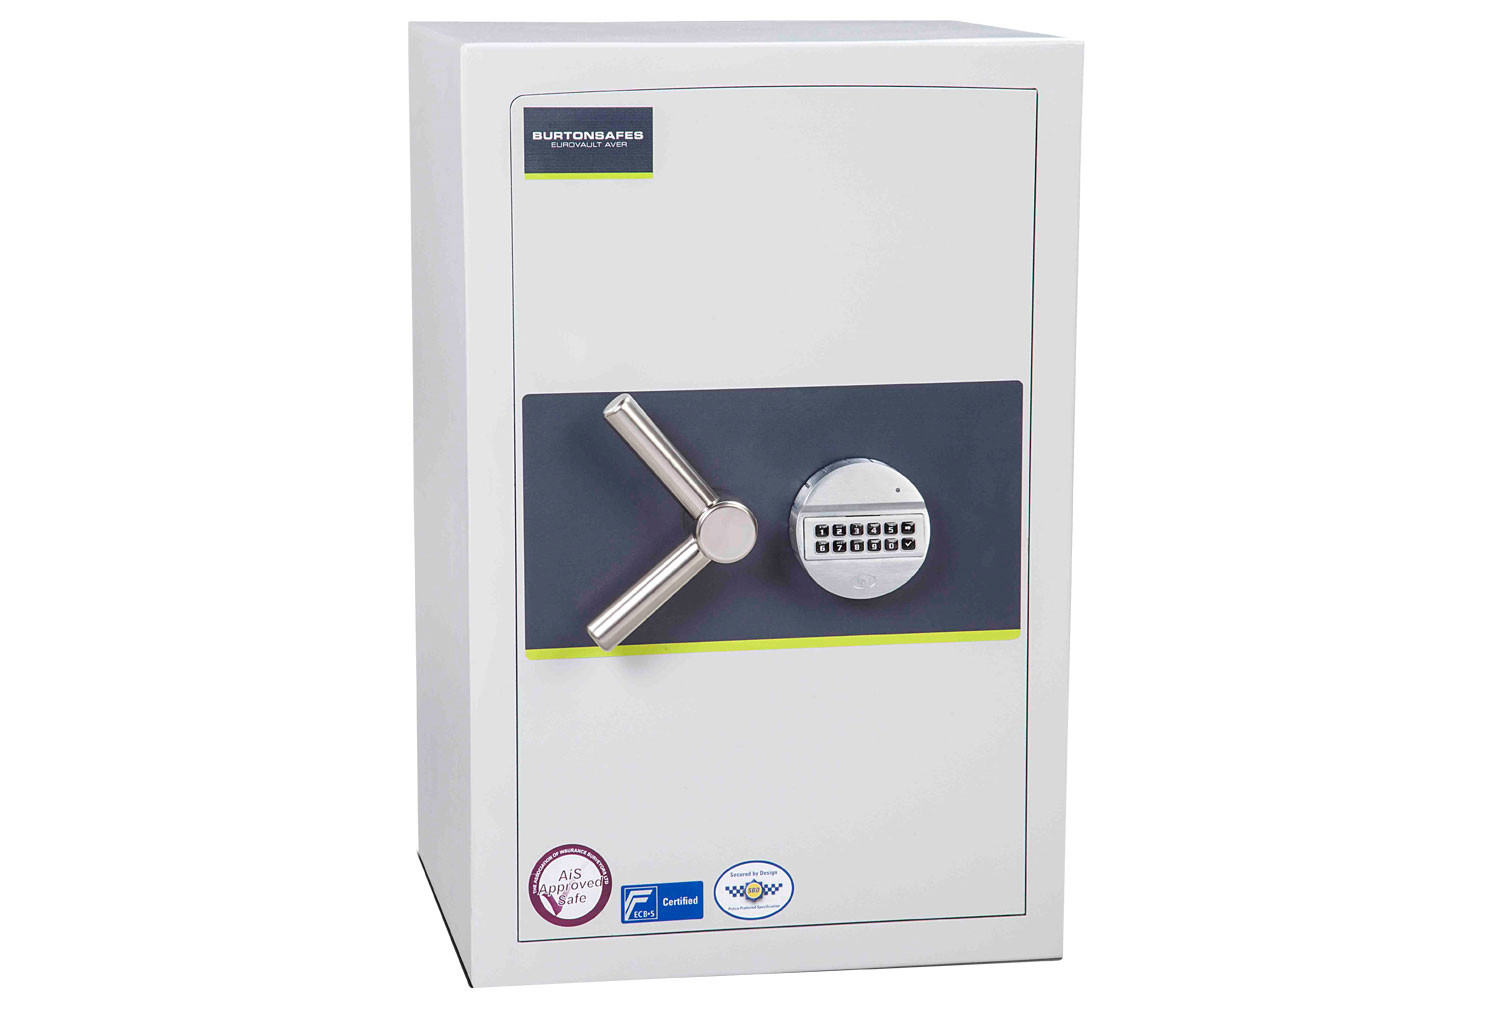 Burton Eurovault Aver Grade 1 Size 3 Safe With Electronic Lock (71ltrs)